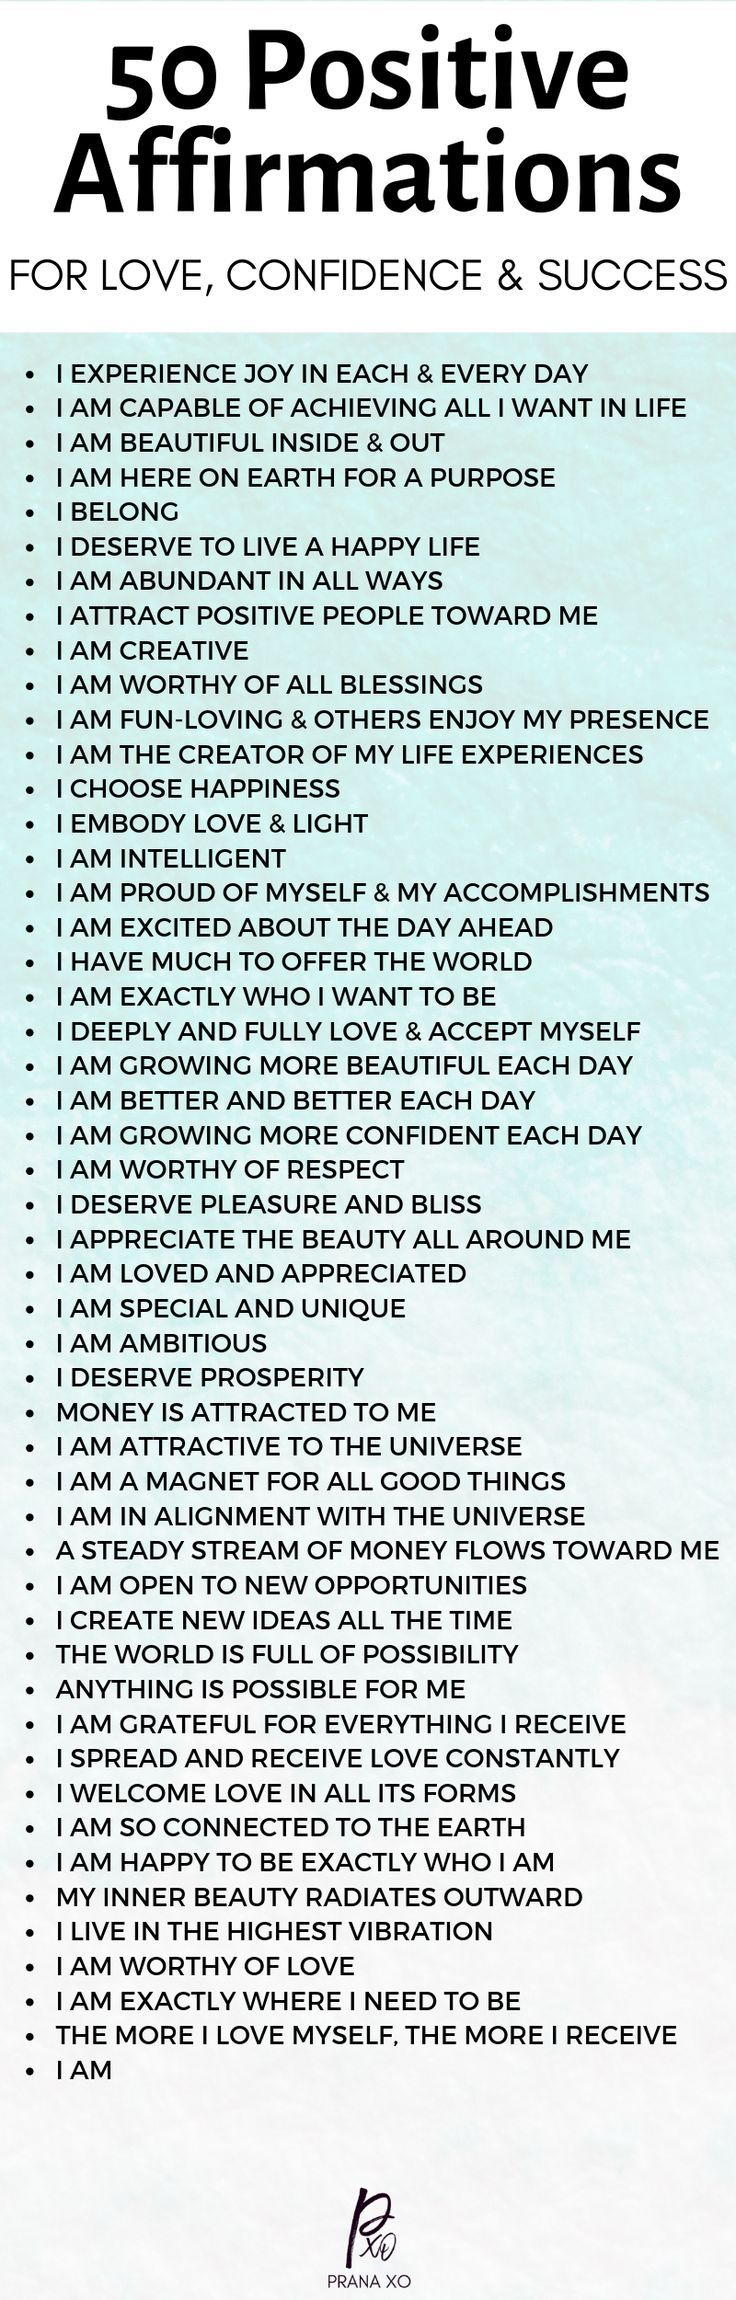 WOW these positive affirmations for manifesting ab…